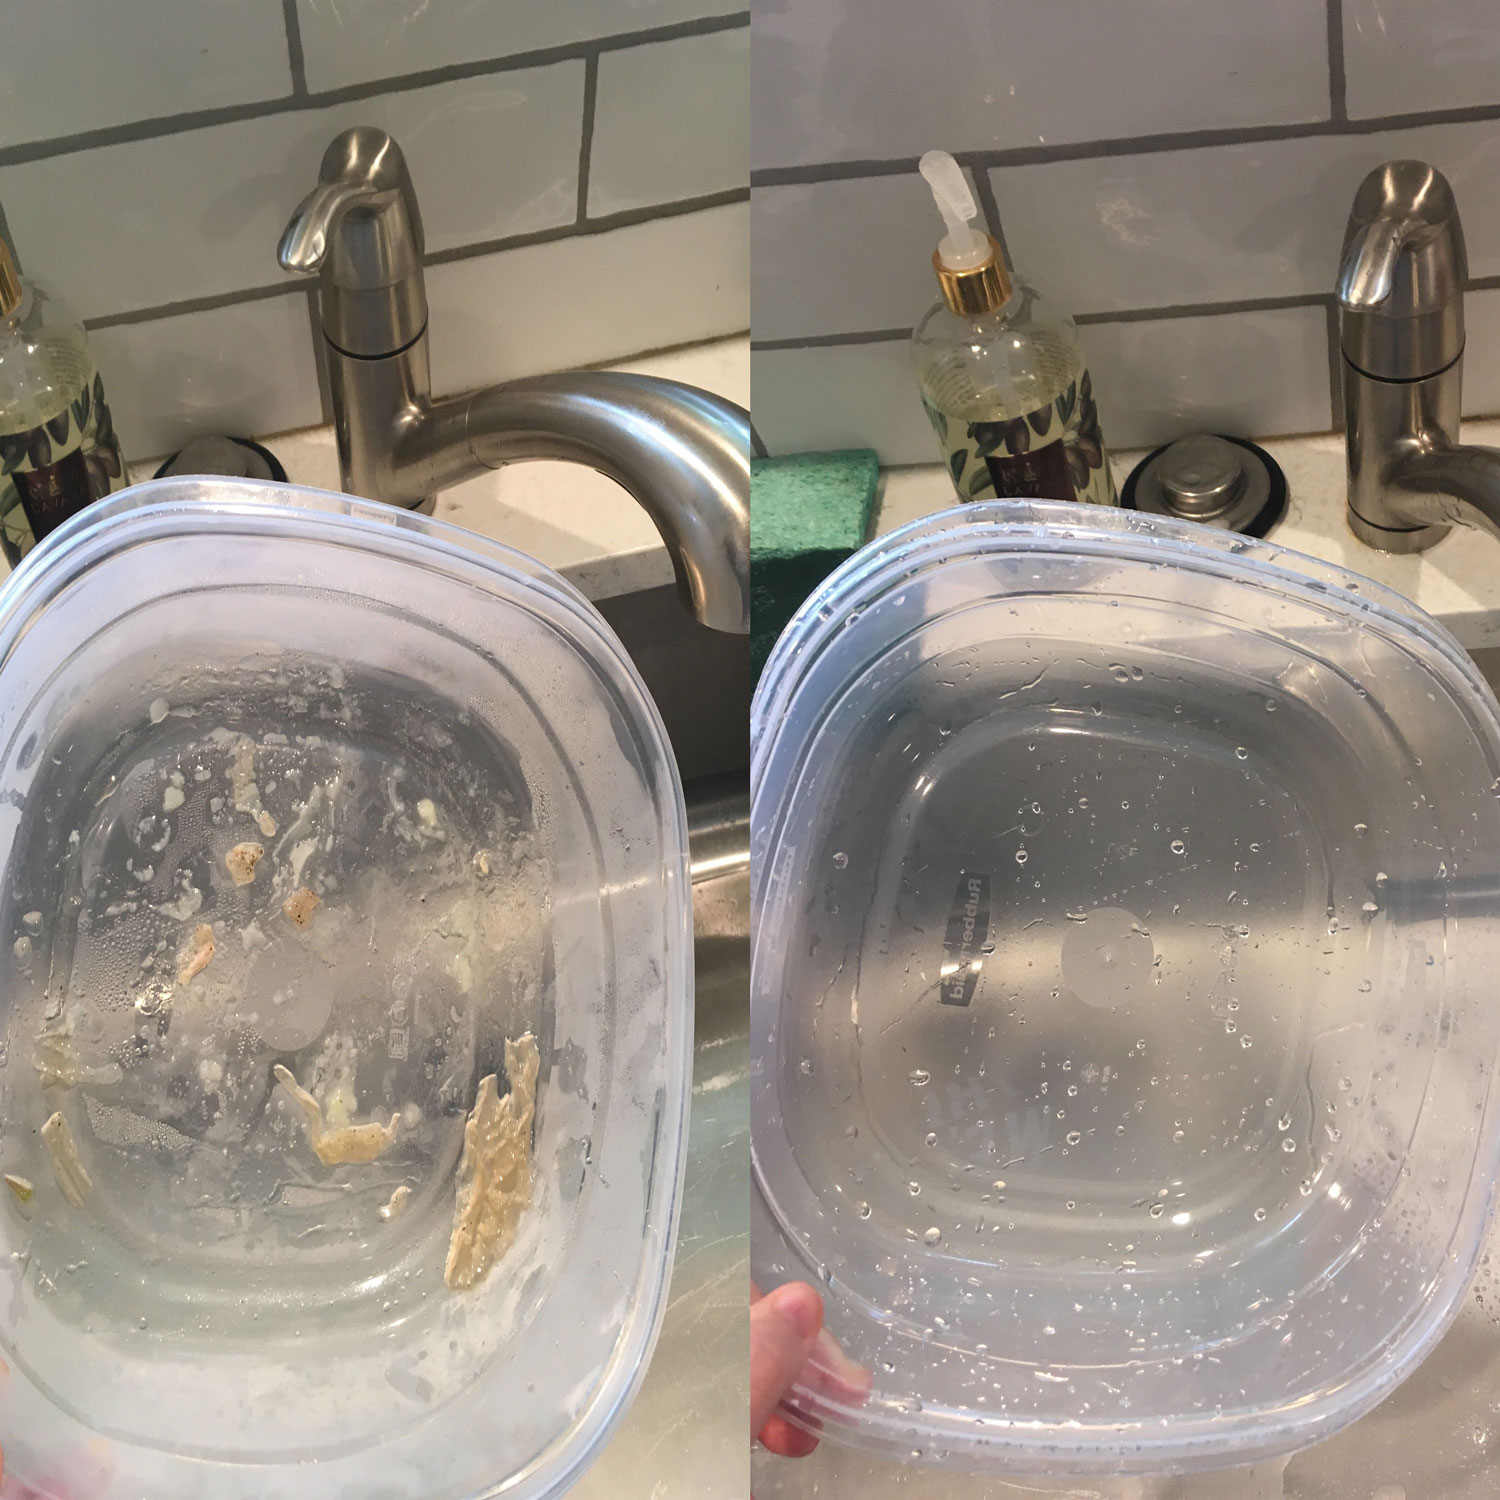 We Tried This Viral Hack for Cleaning Greasy Containers—and It Actually Worked